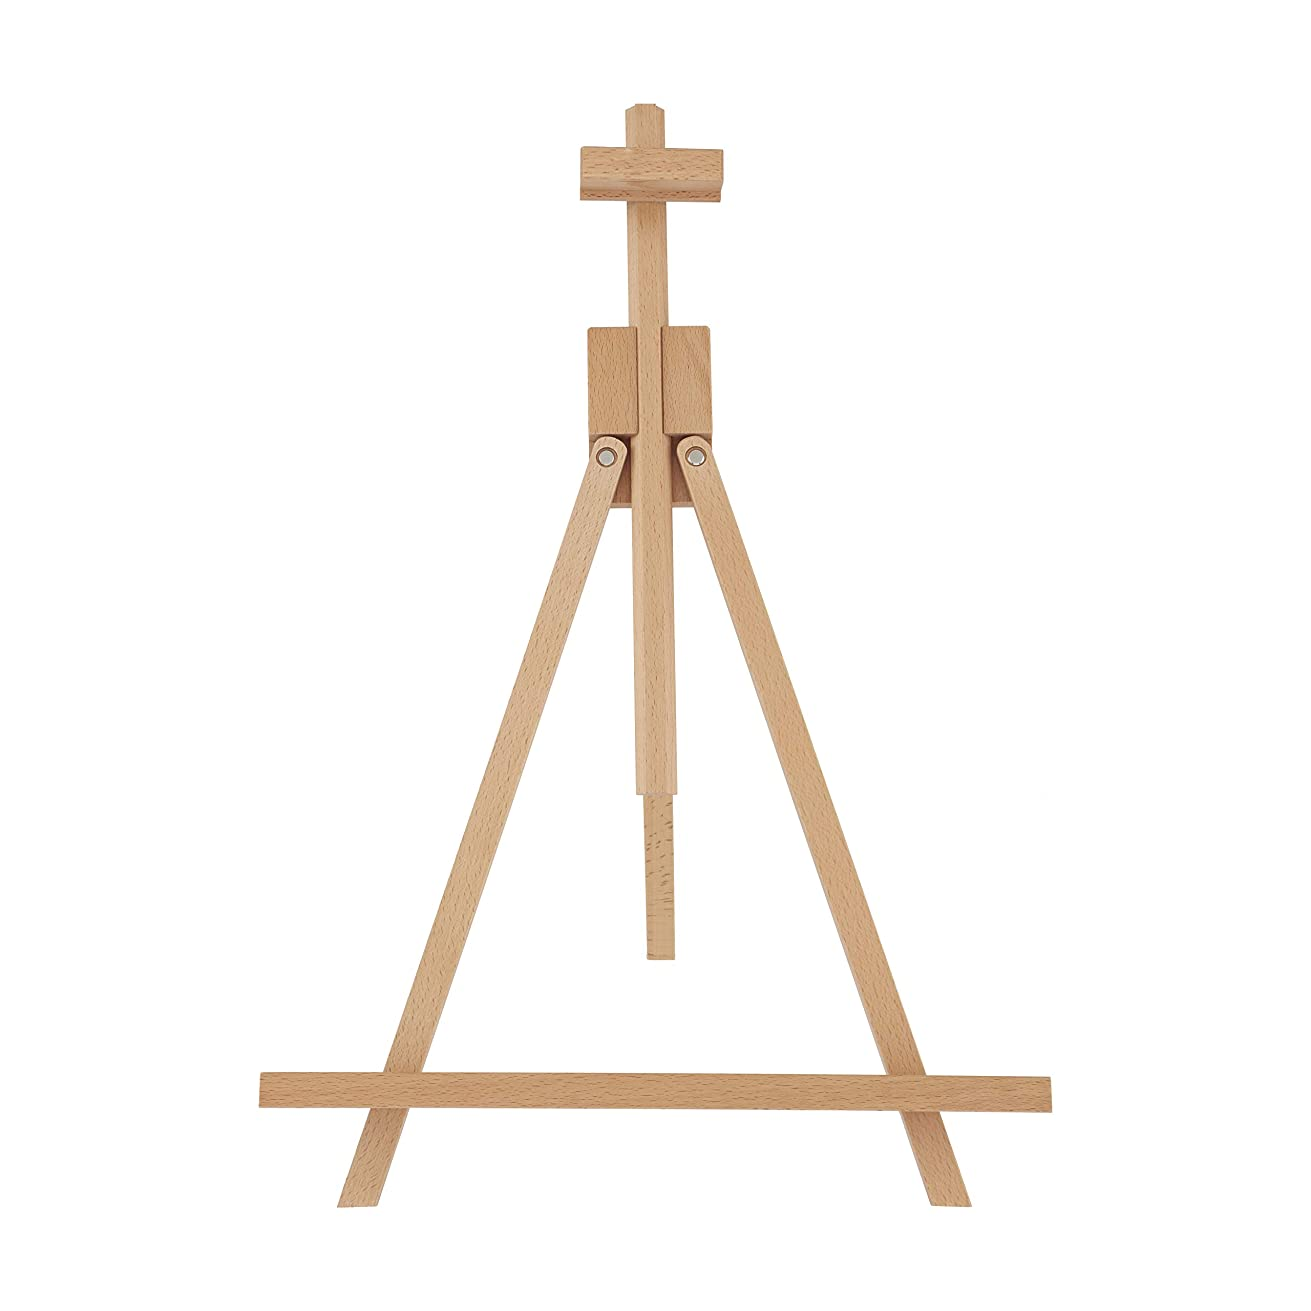 Creative Mark Tabletop Painting Easel Rambler Table Easel Lightweight Art Easel for Children Teen & Adult Painters Holds Any Canvas Up to 27